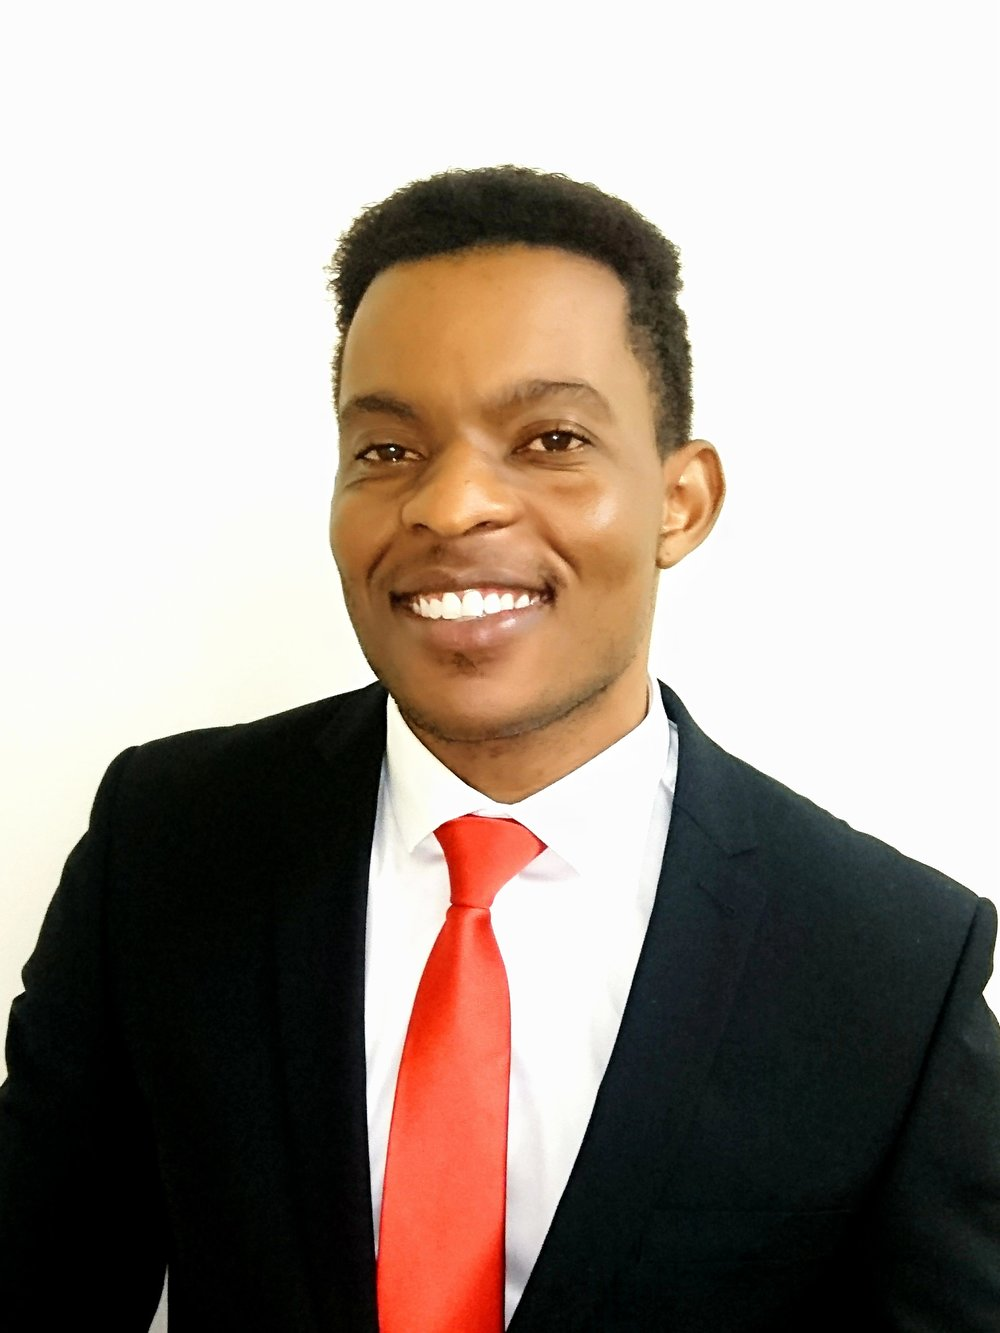 Tshepang Edwin Makwati  - University of Johannesburg, South Africa